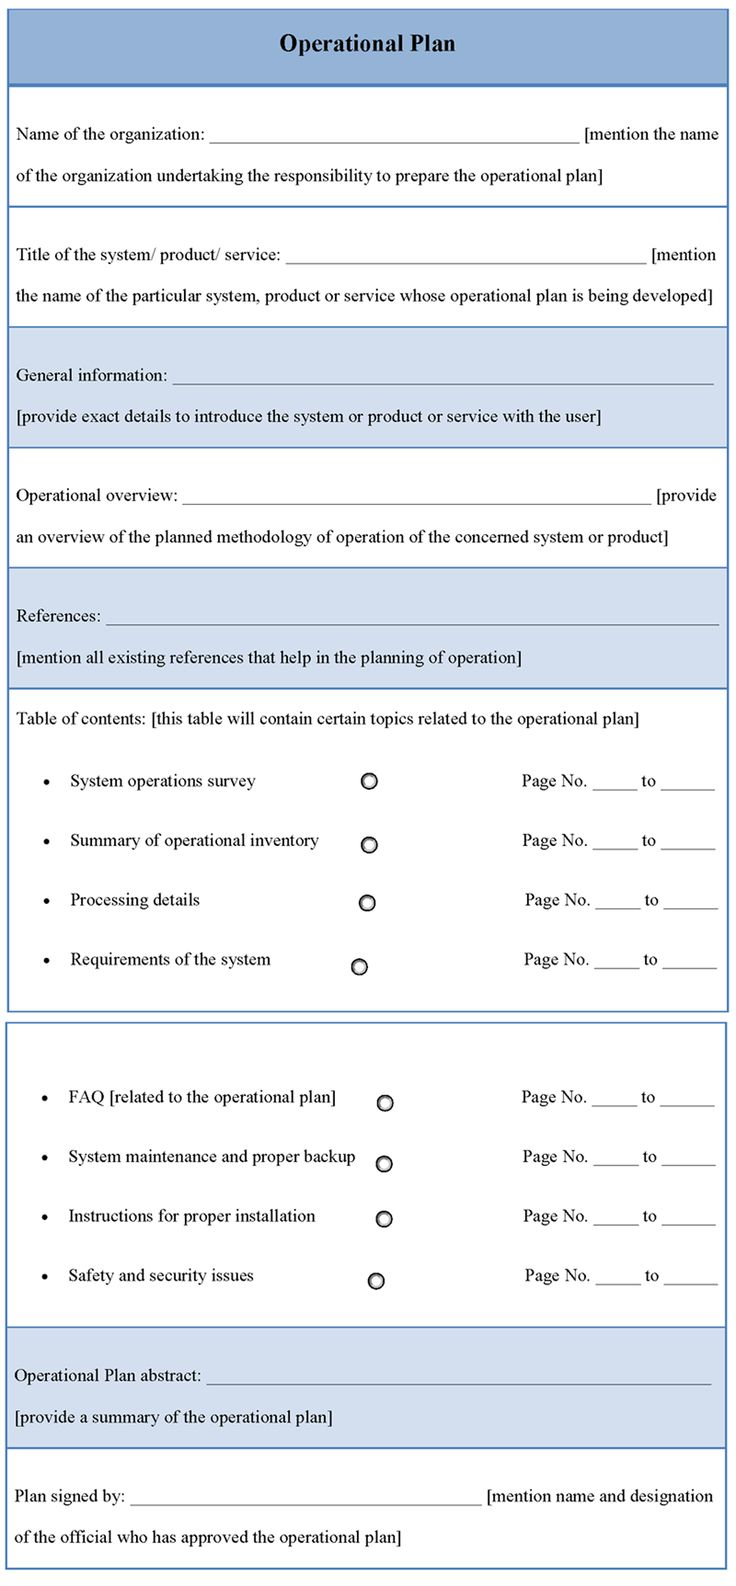 Operational Plan Template How to plan, Templates